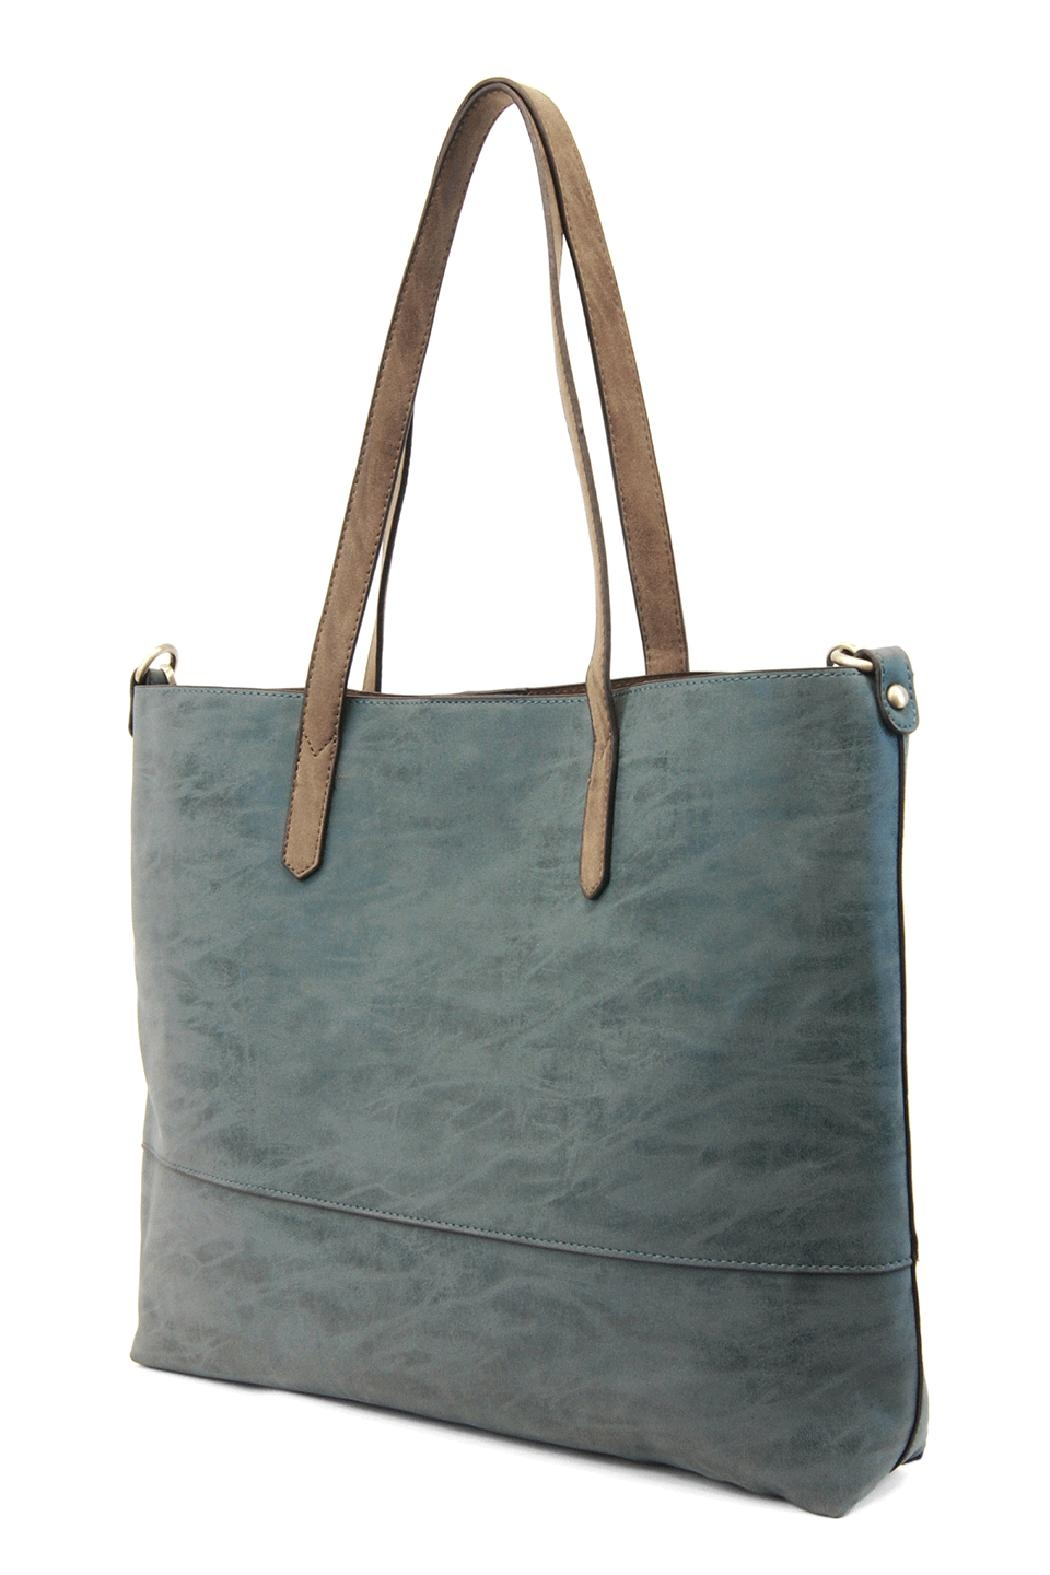 Joy Susan Accessories Brushed 2in1 Tote - Front Full Image